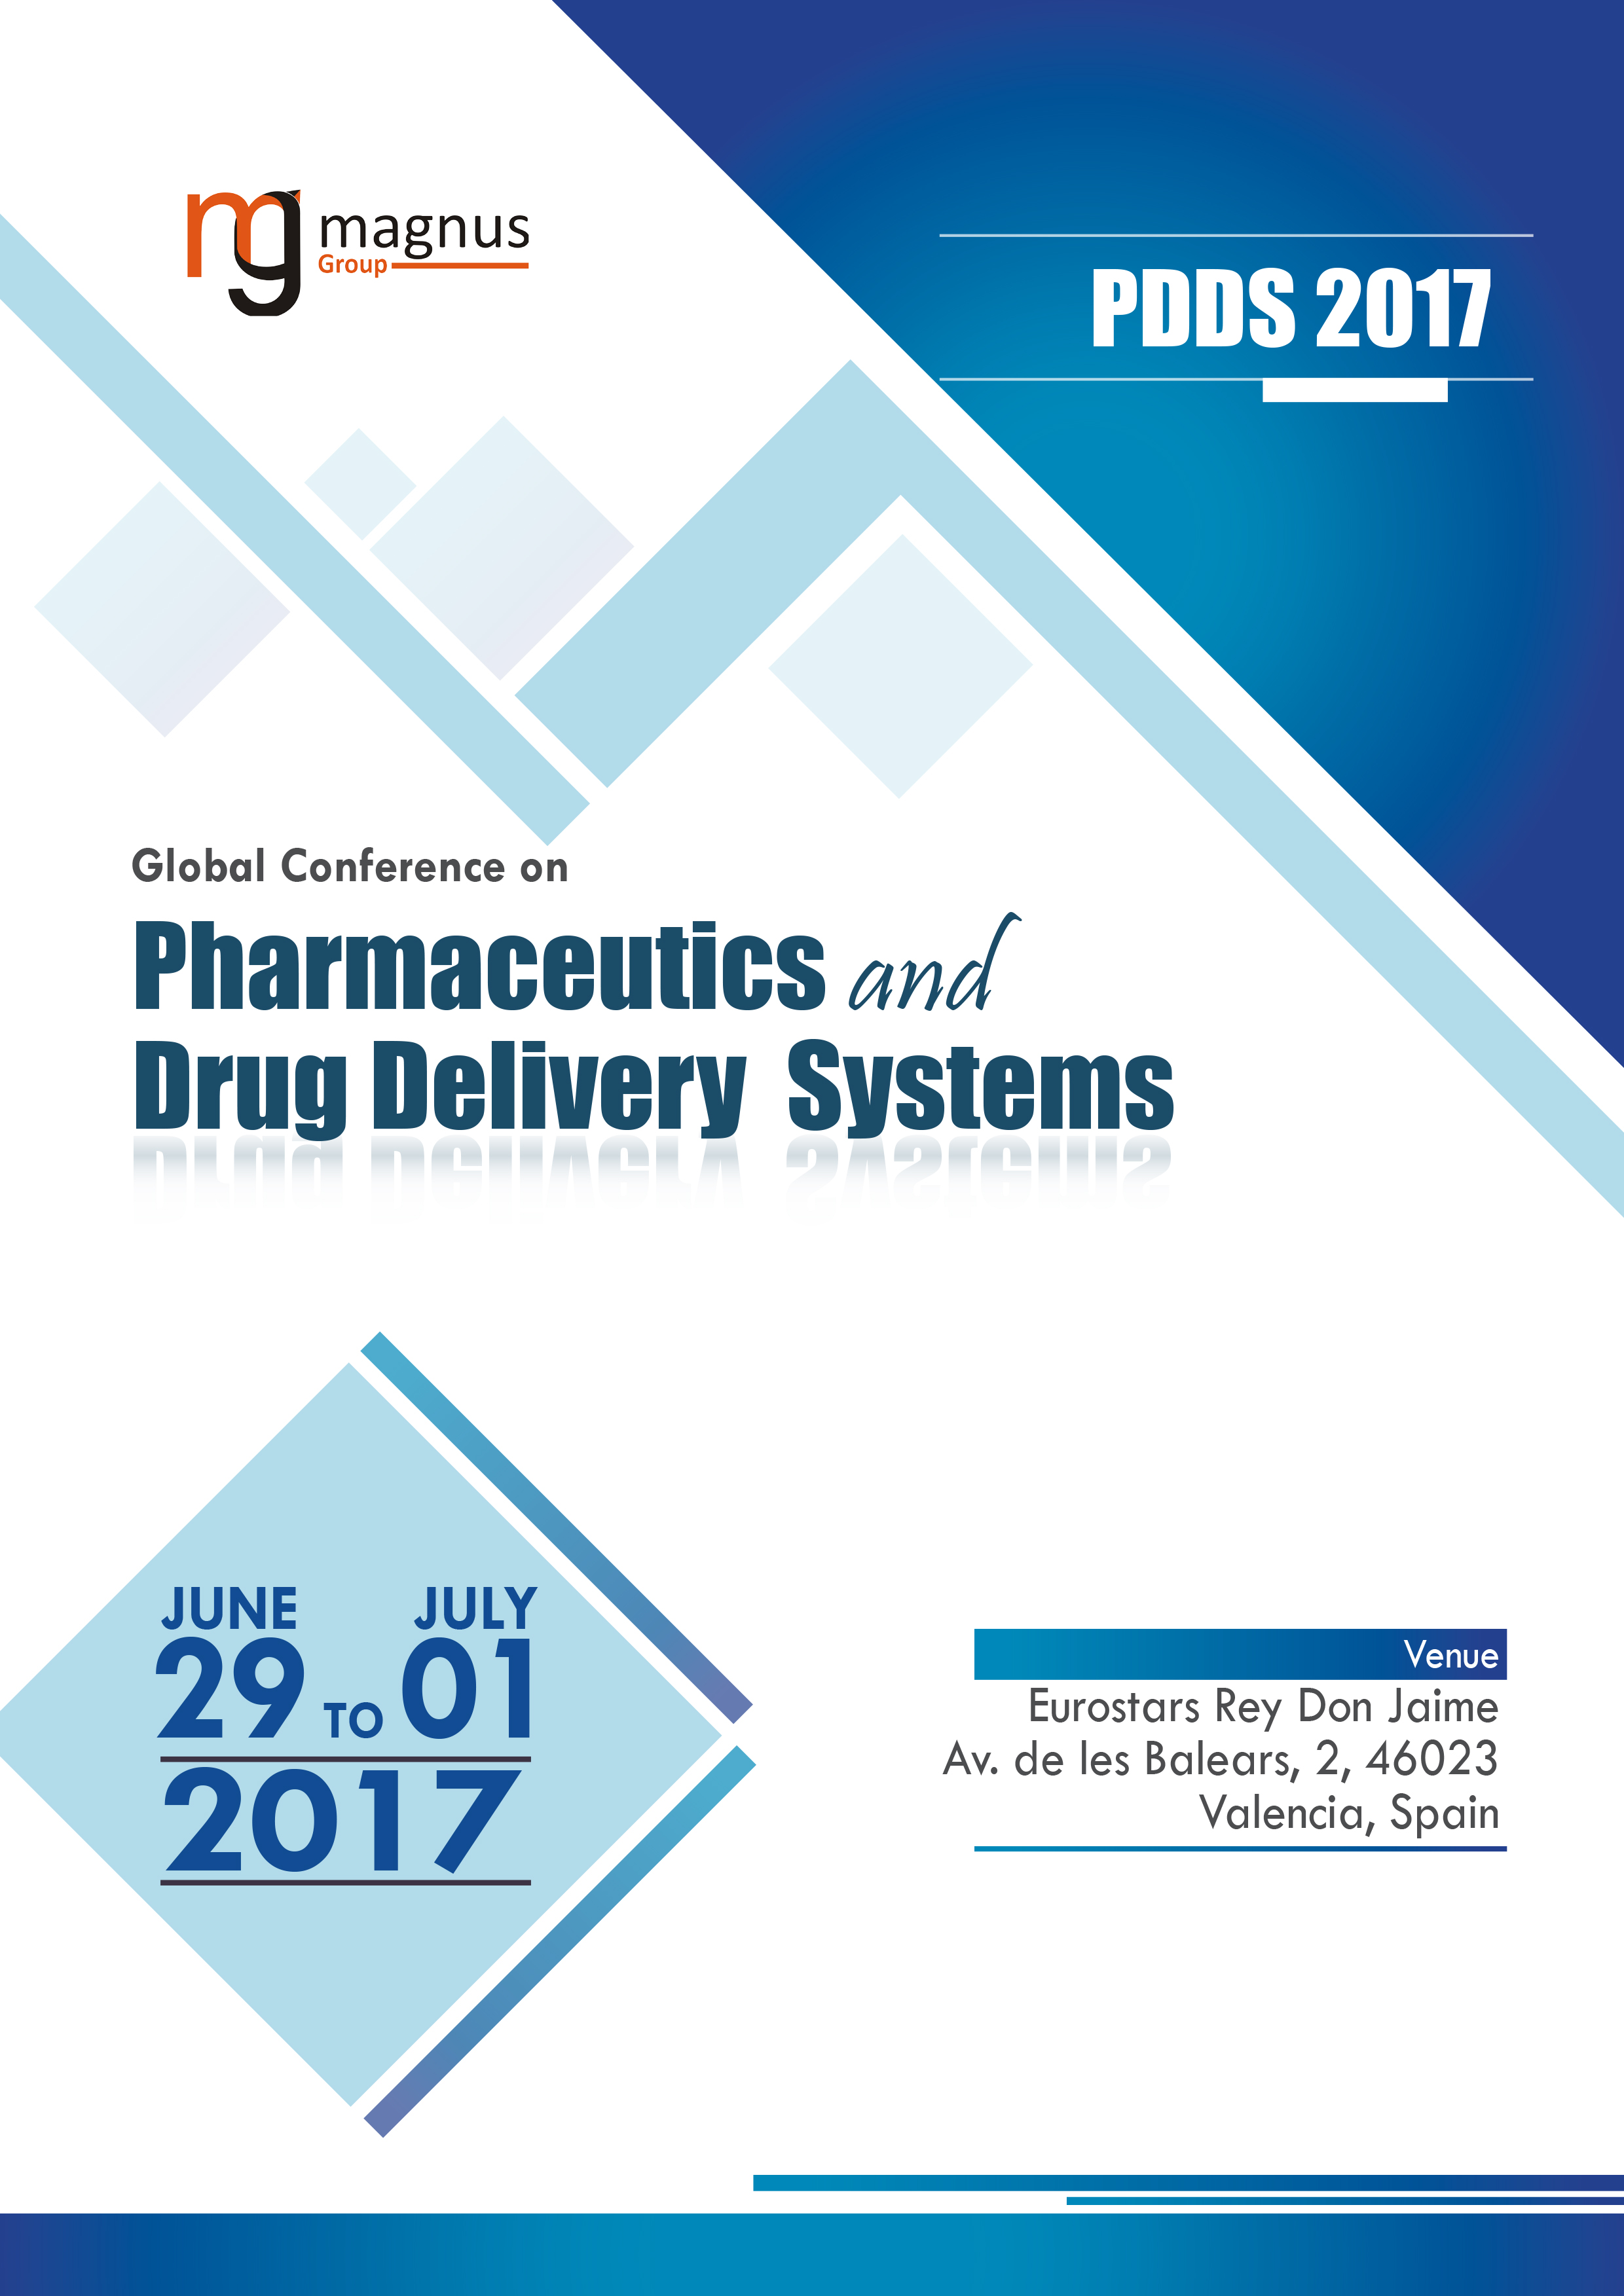 Global Conference on Pharmaceutics and Drug Delivery Systems | Valencia, Spain Book